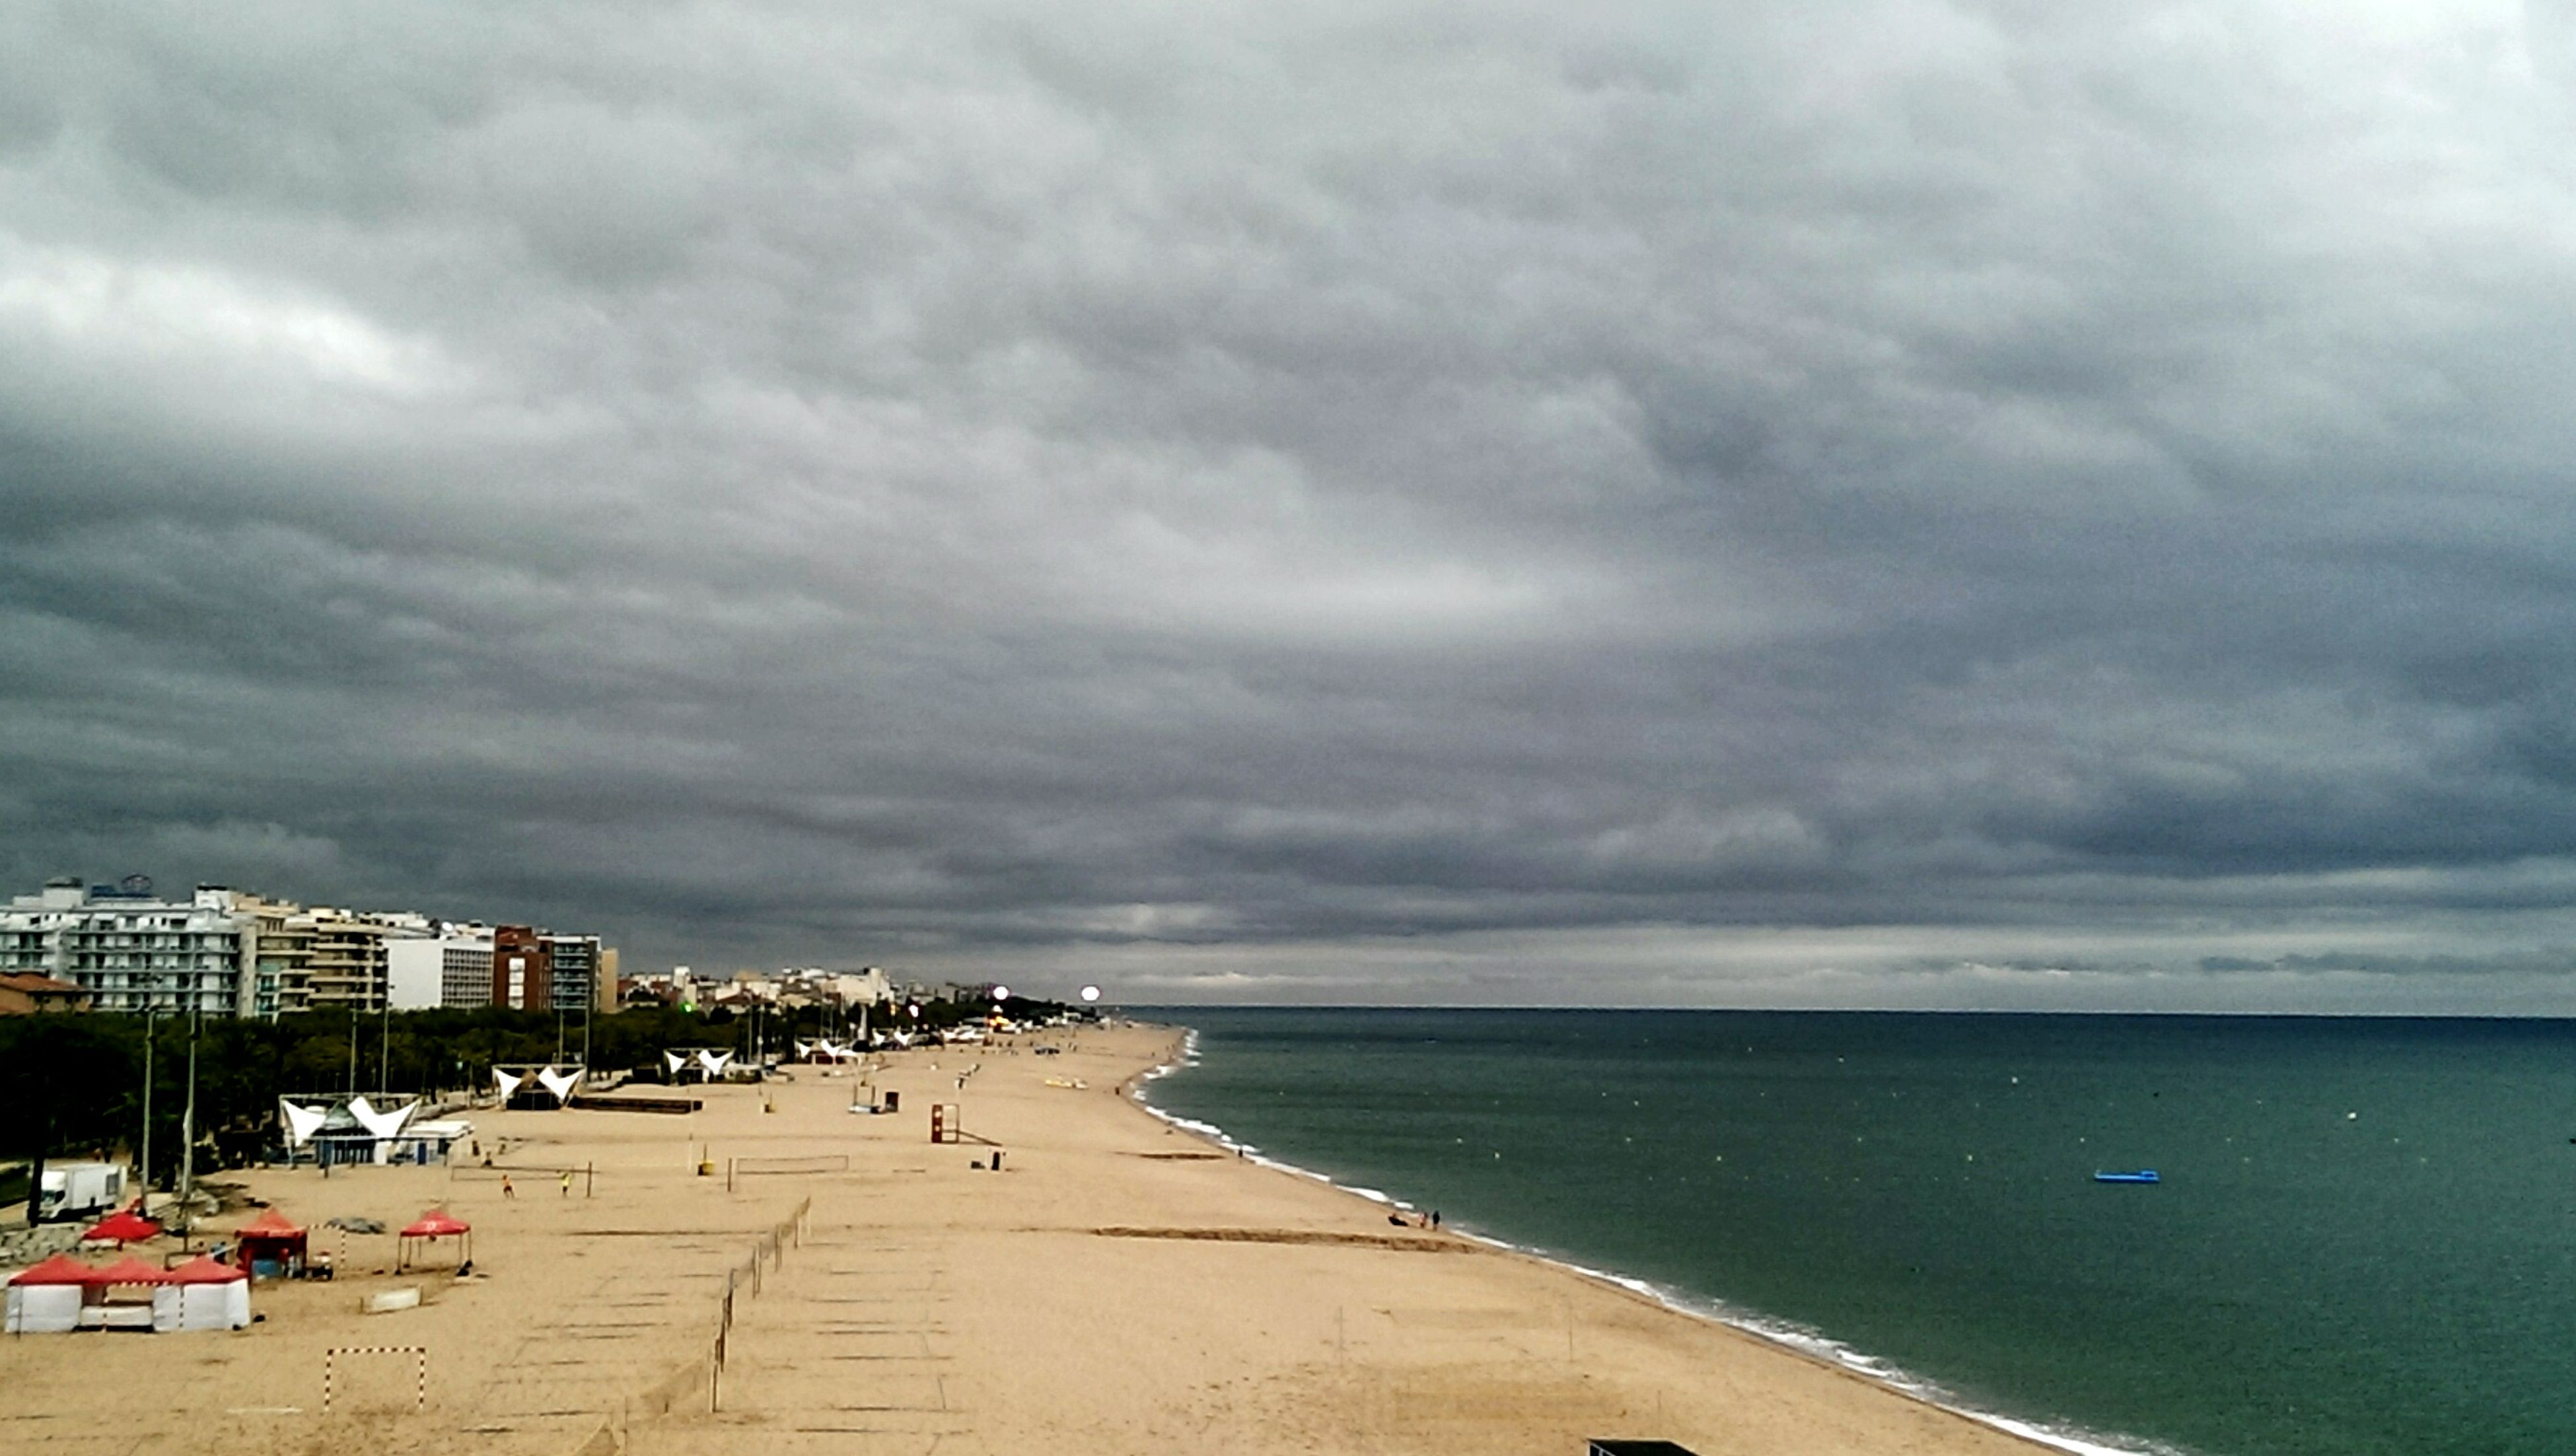 sky, sea, cloud - sky, water, beach, cloudy, horizon over water, building exterior, built structure, architecture, cloud, shore, incidental people, overcast, nature, weather, sand, outdoors, scenics, day